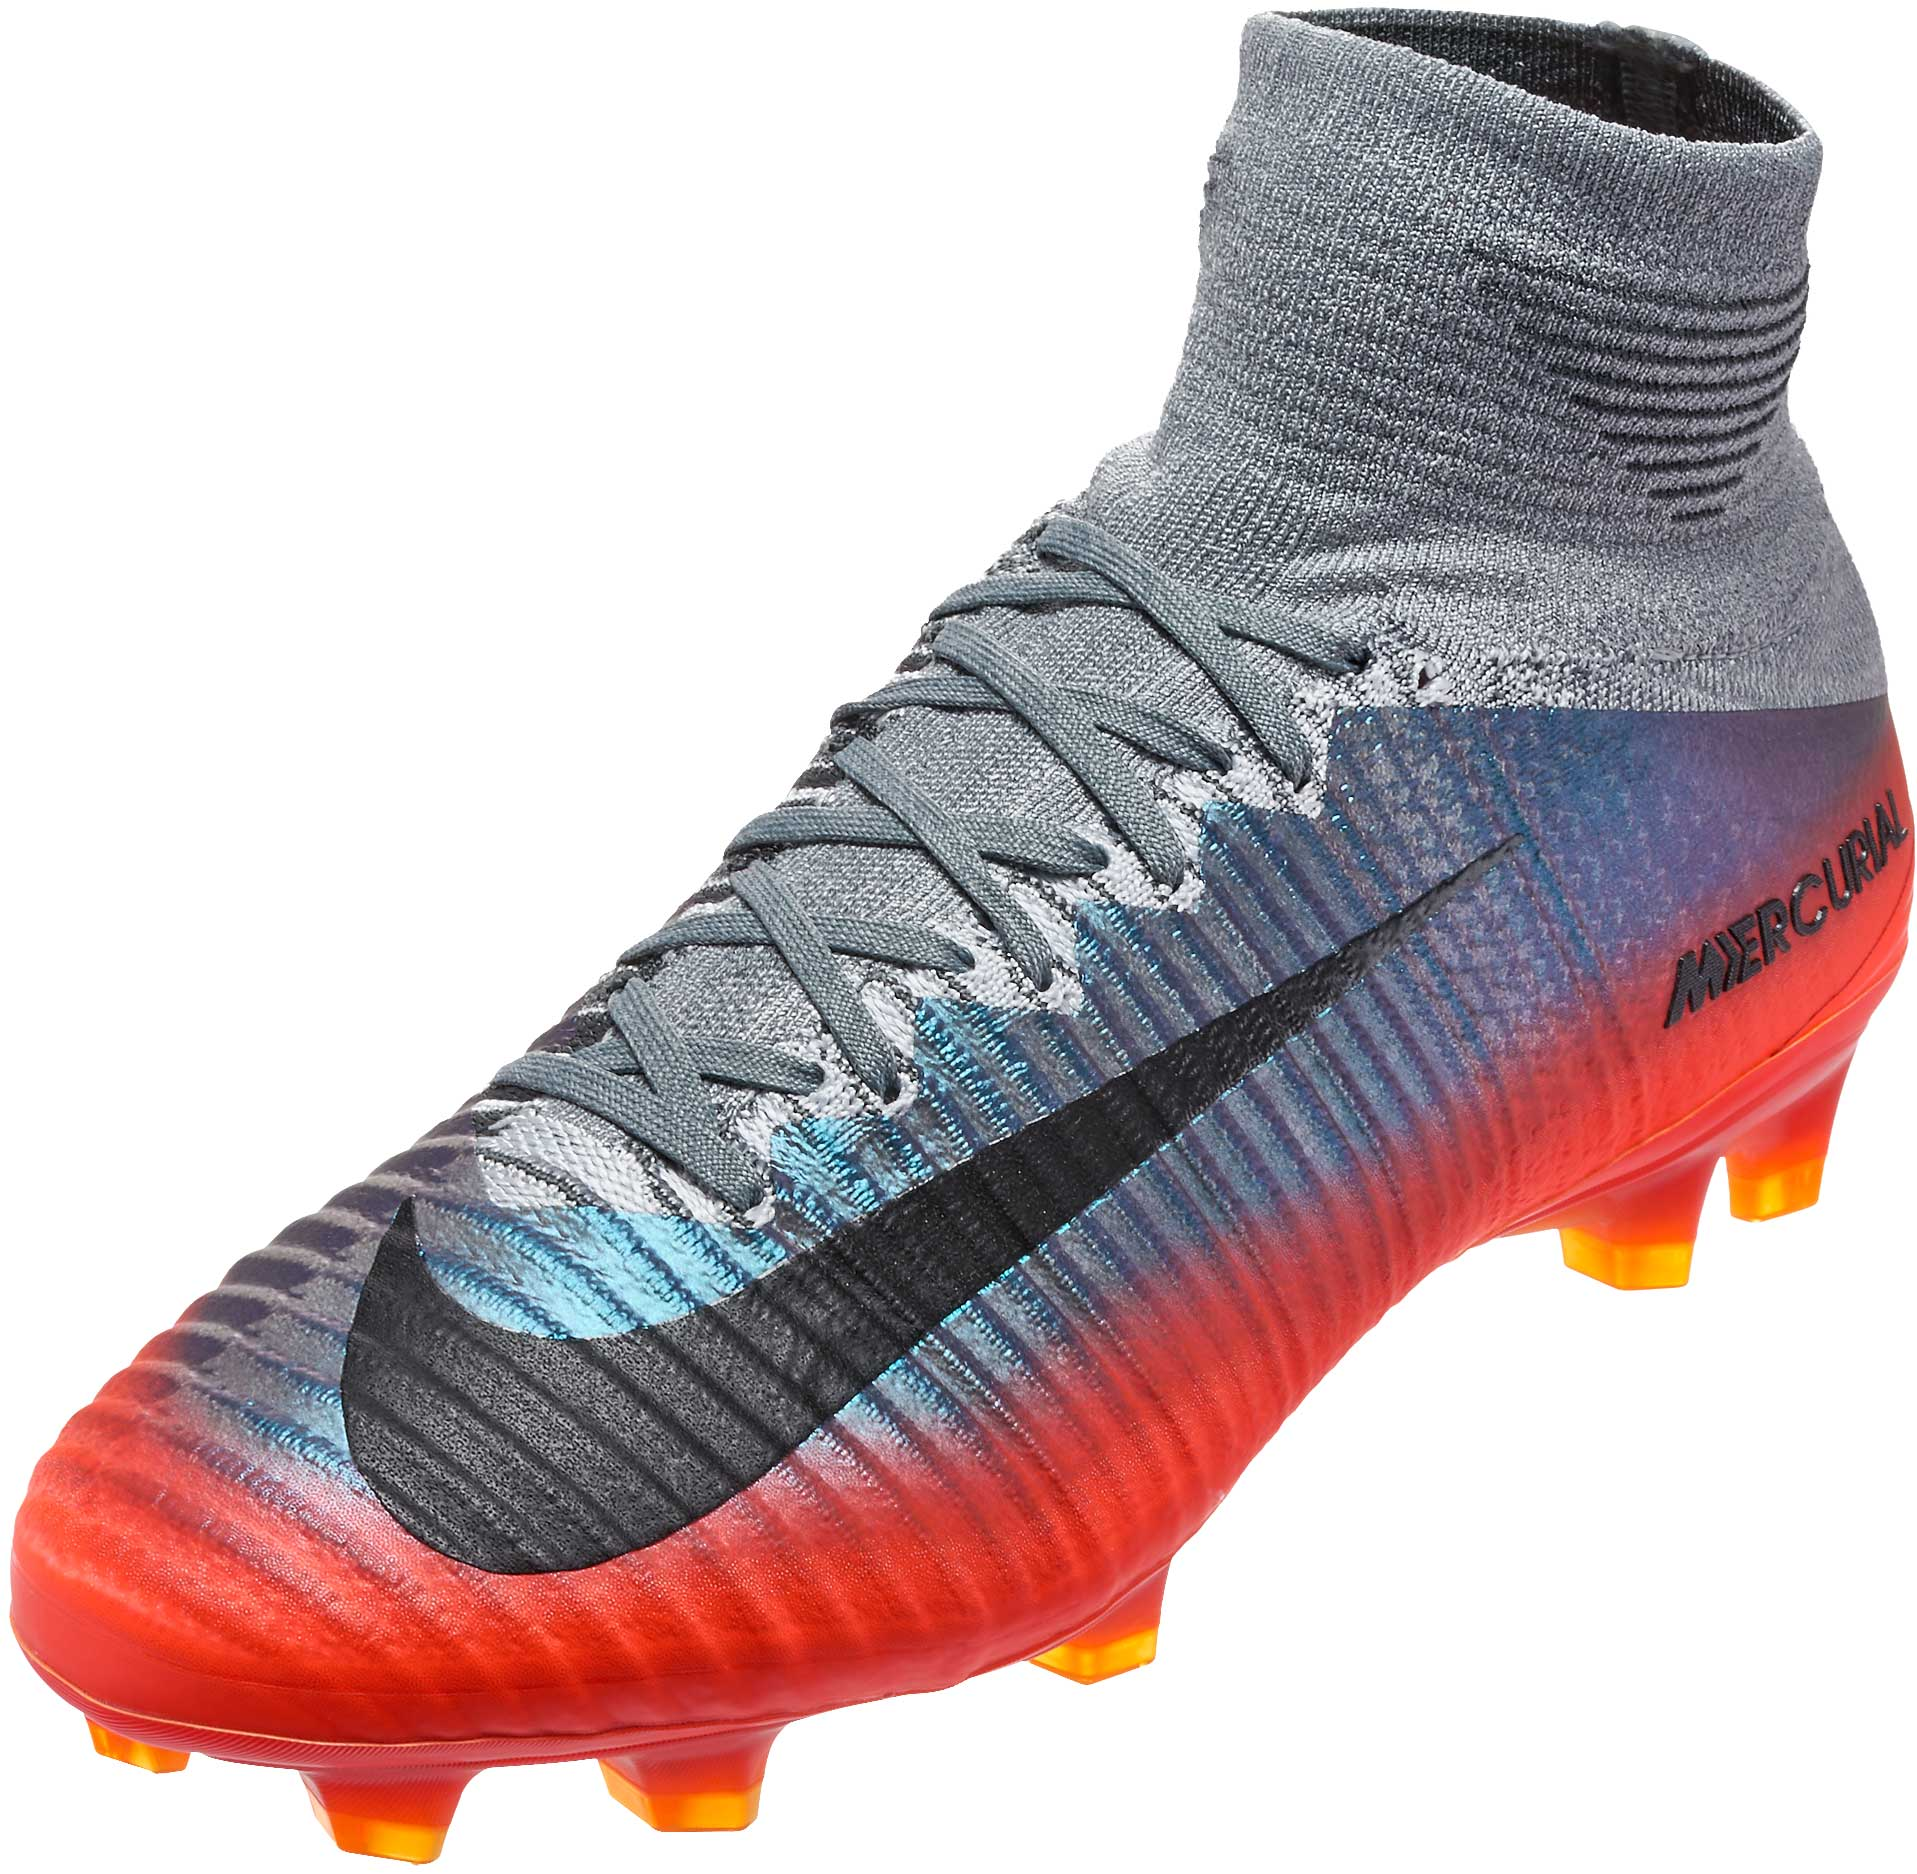 info for a0566 01482 Nike Mercurial Superfly V FG Soccer Cleats - CR7 - Cool Grey ...